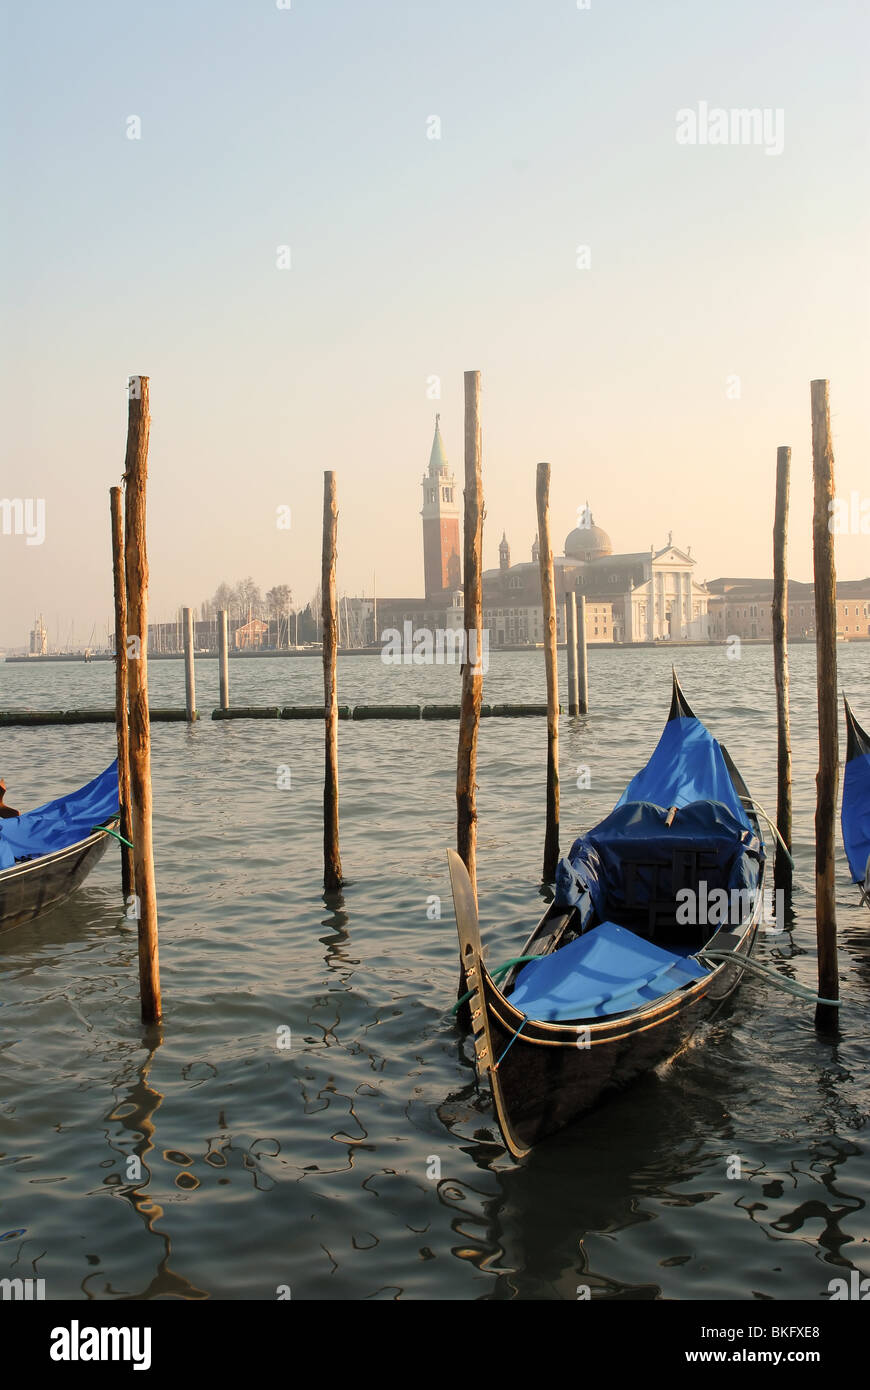 Gondola at Grand Canale, Venice (Italy) - Stock Image